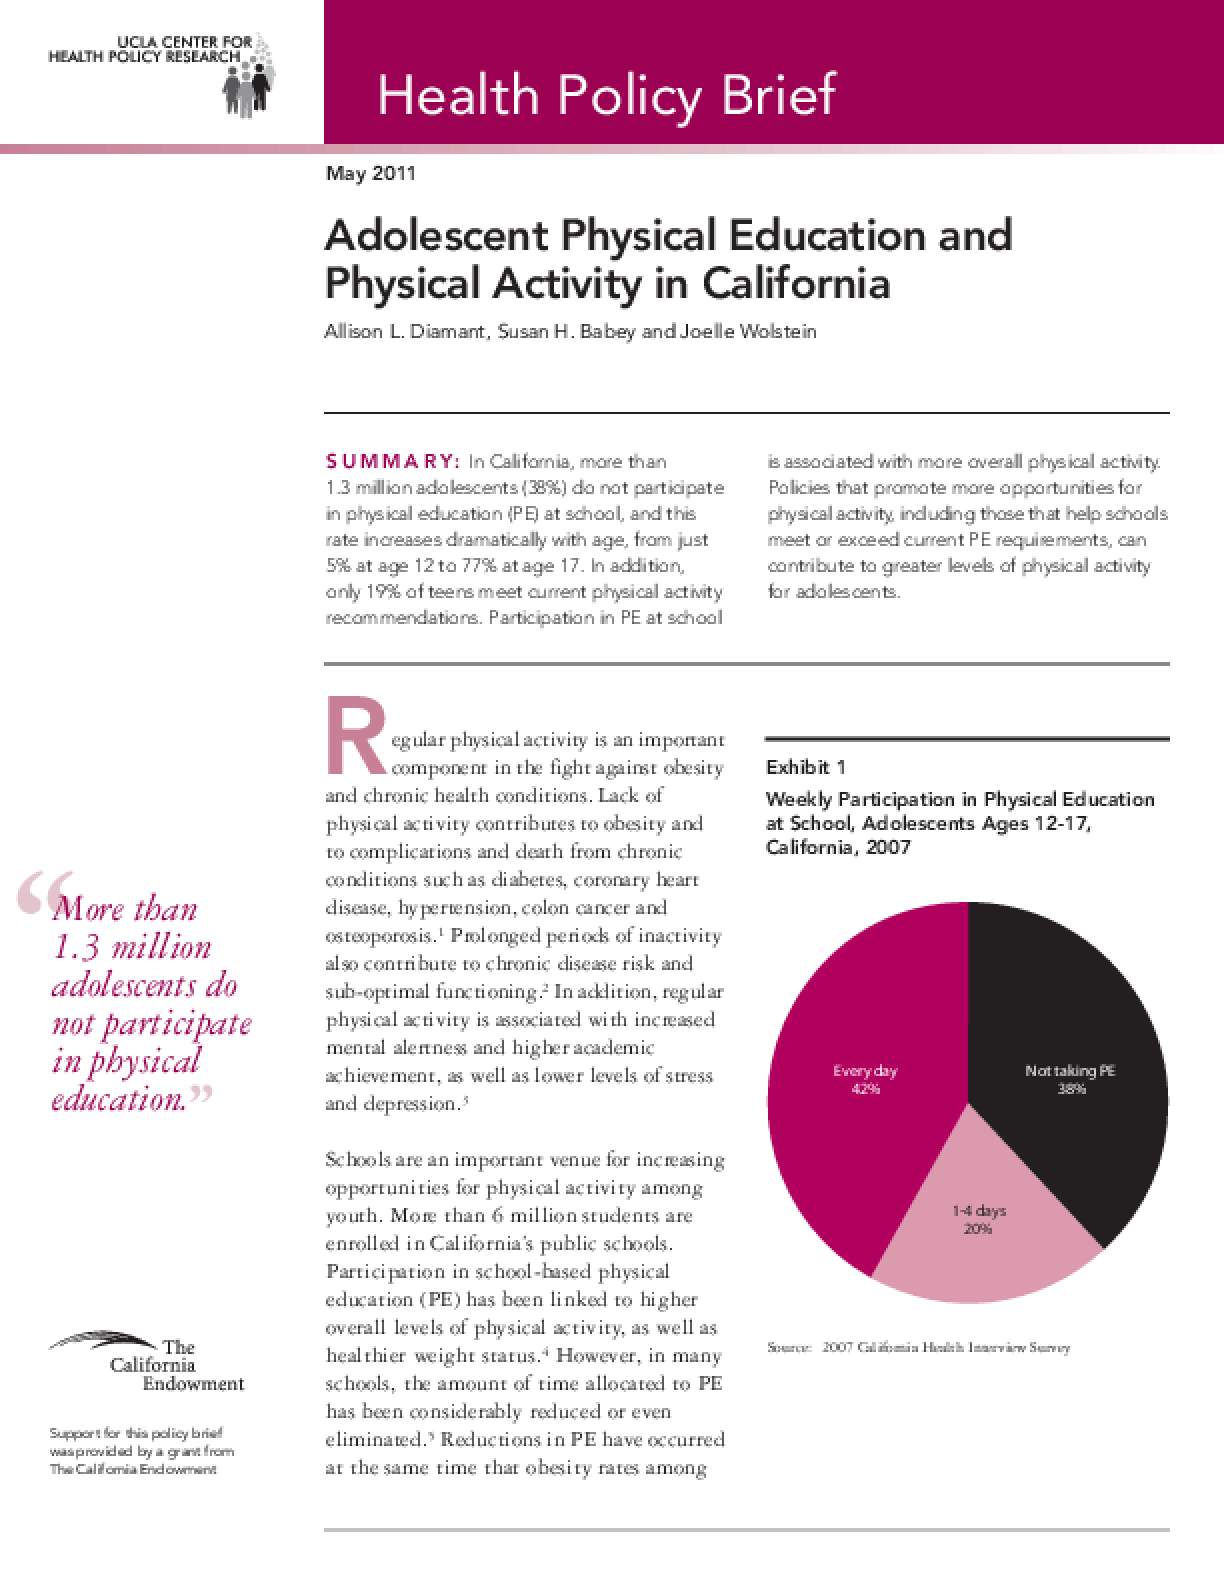 Adolescent Physical Education and Physical Activity in California